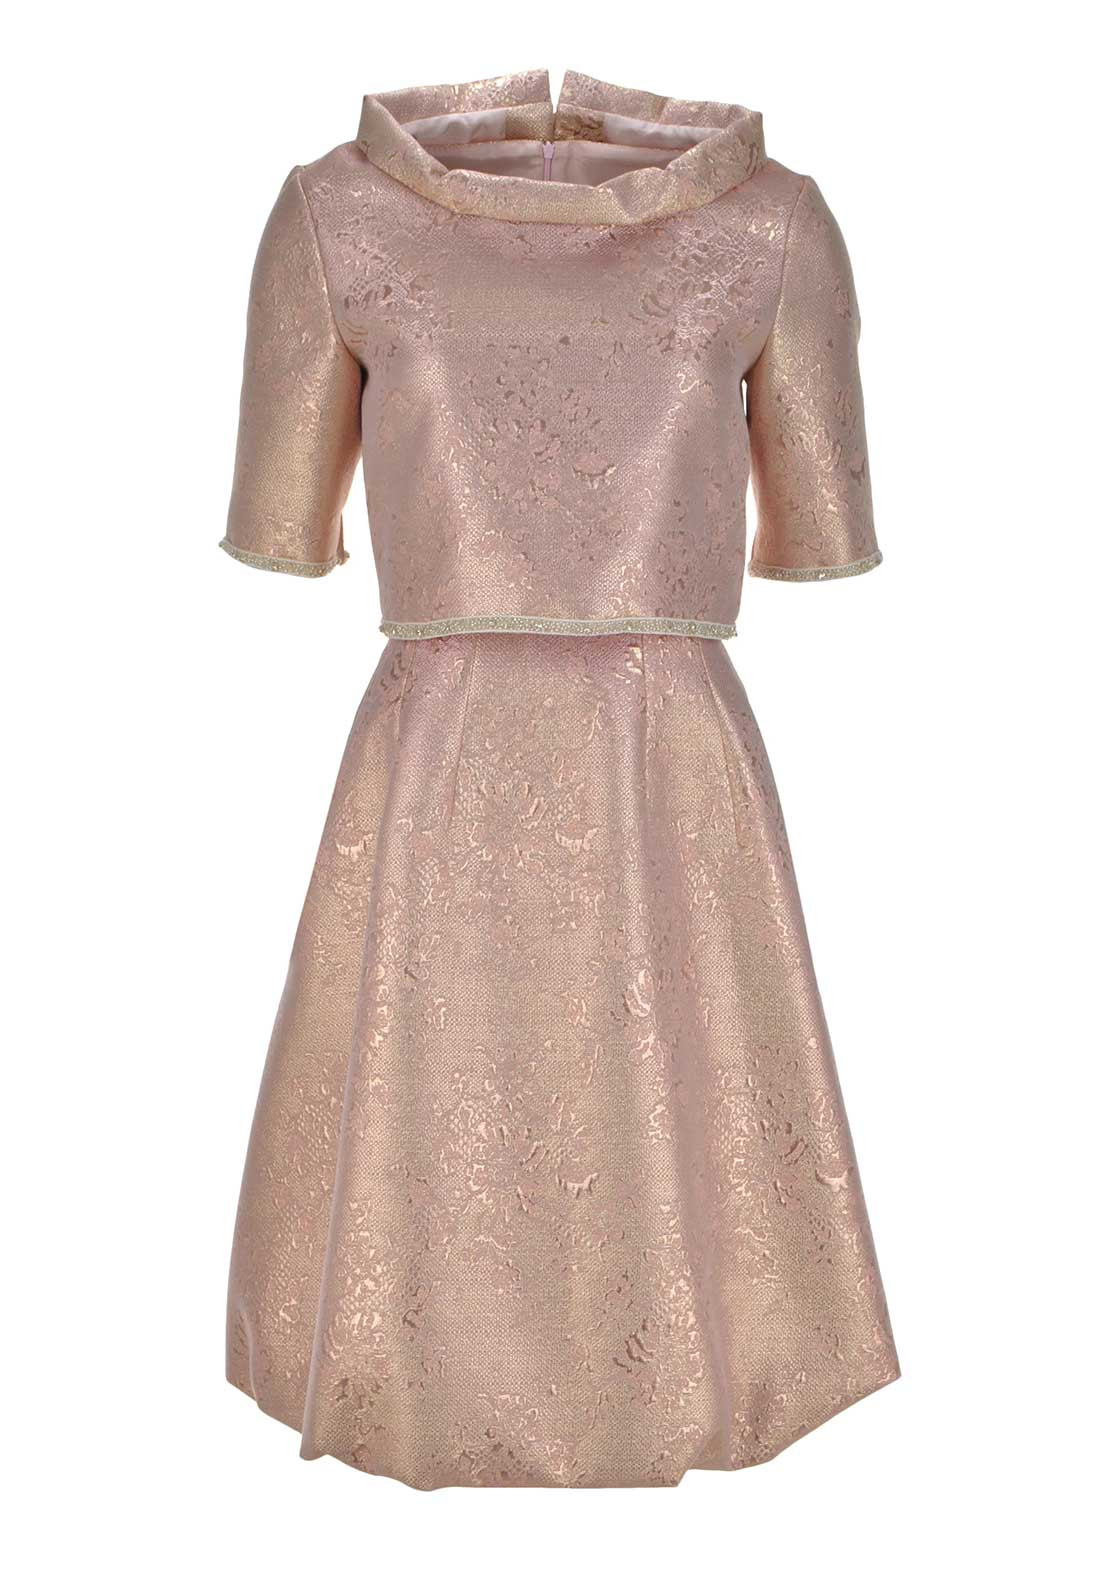 Fely Campo Two Piece Dress and Top, Metallic Pink